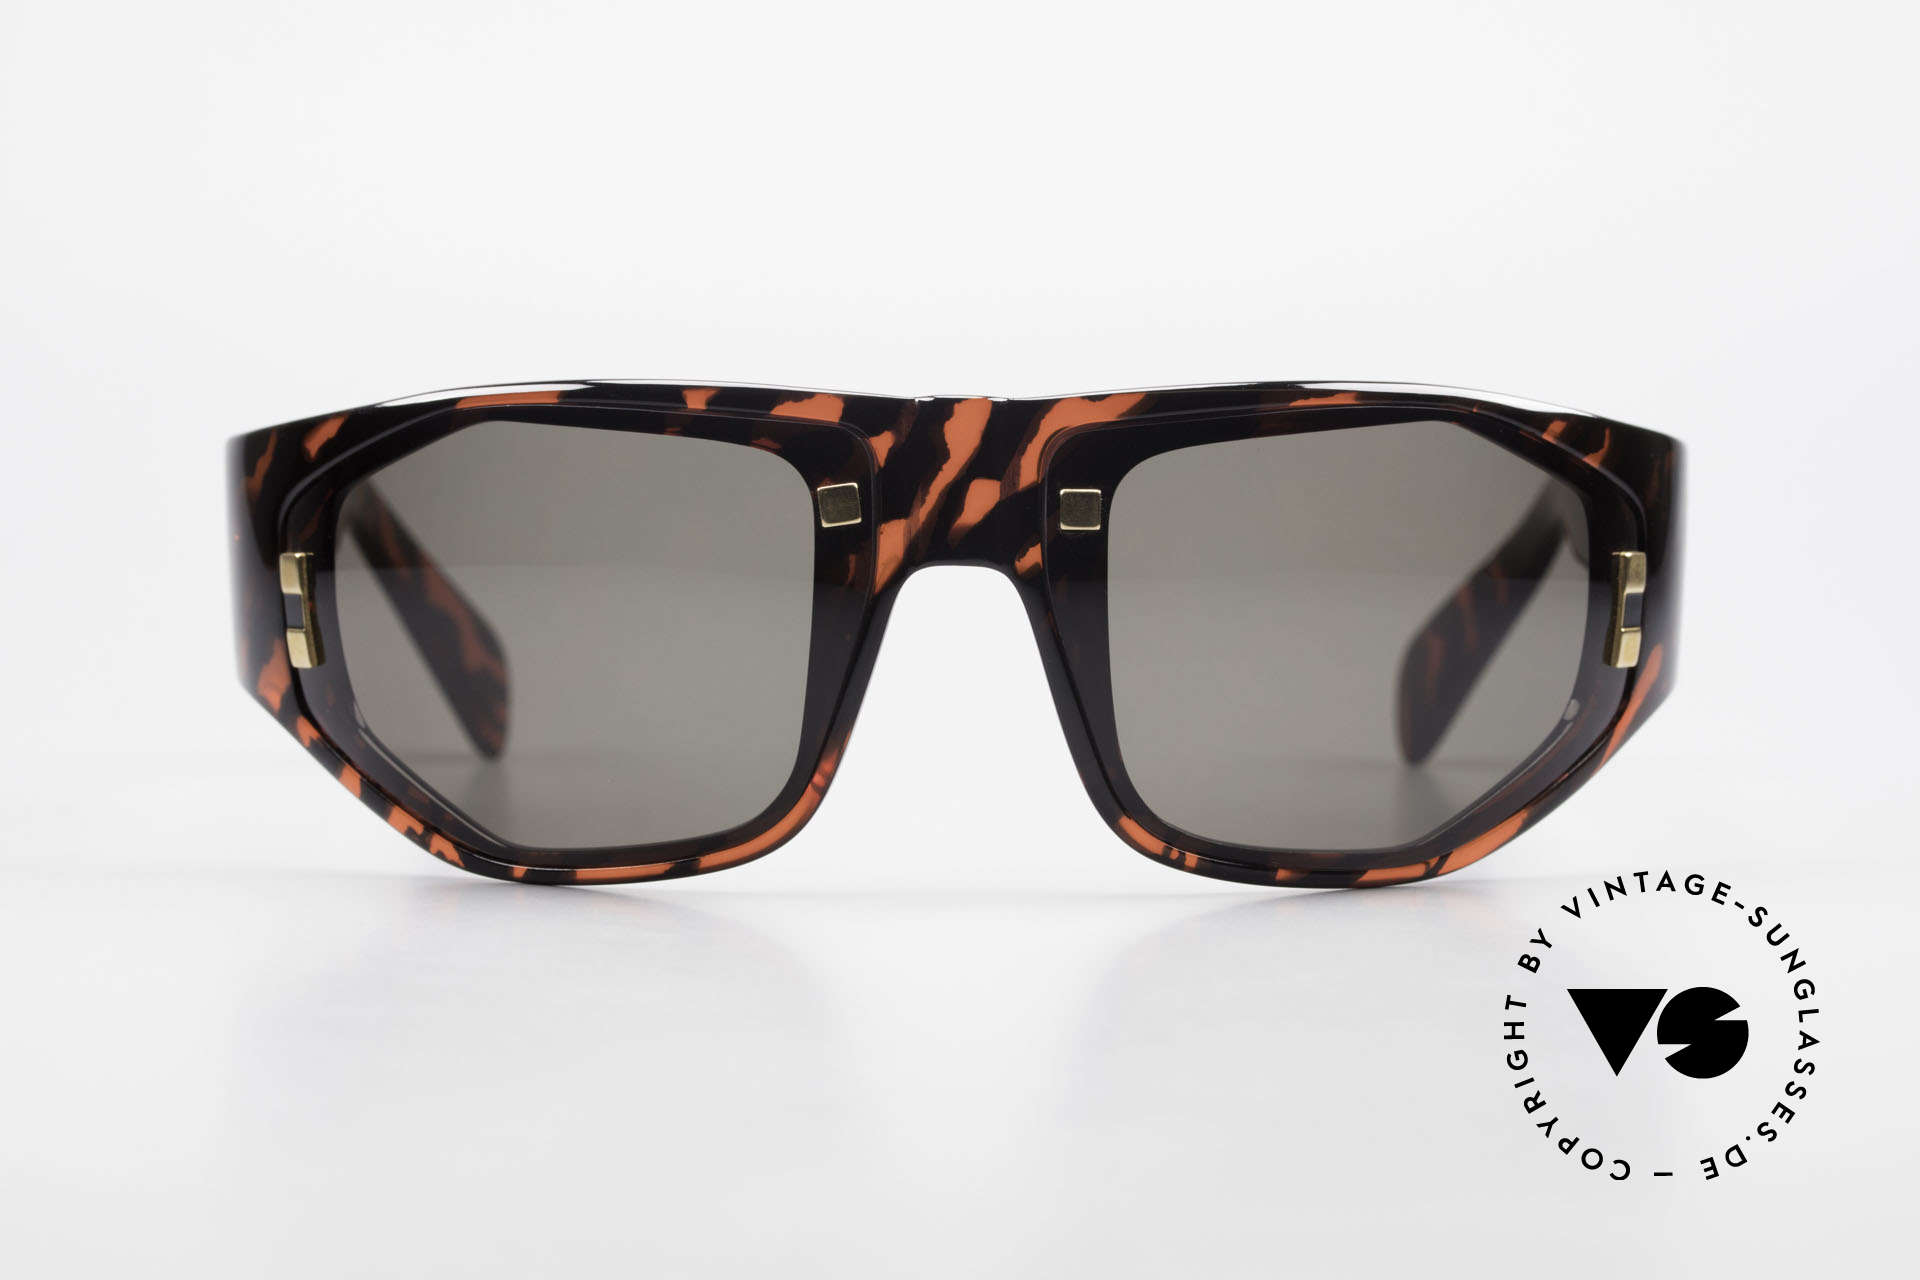 Paloma Picasso 3701 90's Wrap Sunglasses Ladies, spectacular design meets a brilliant frame pattern, Made for Women